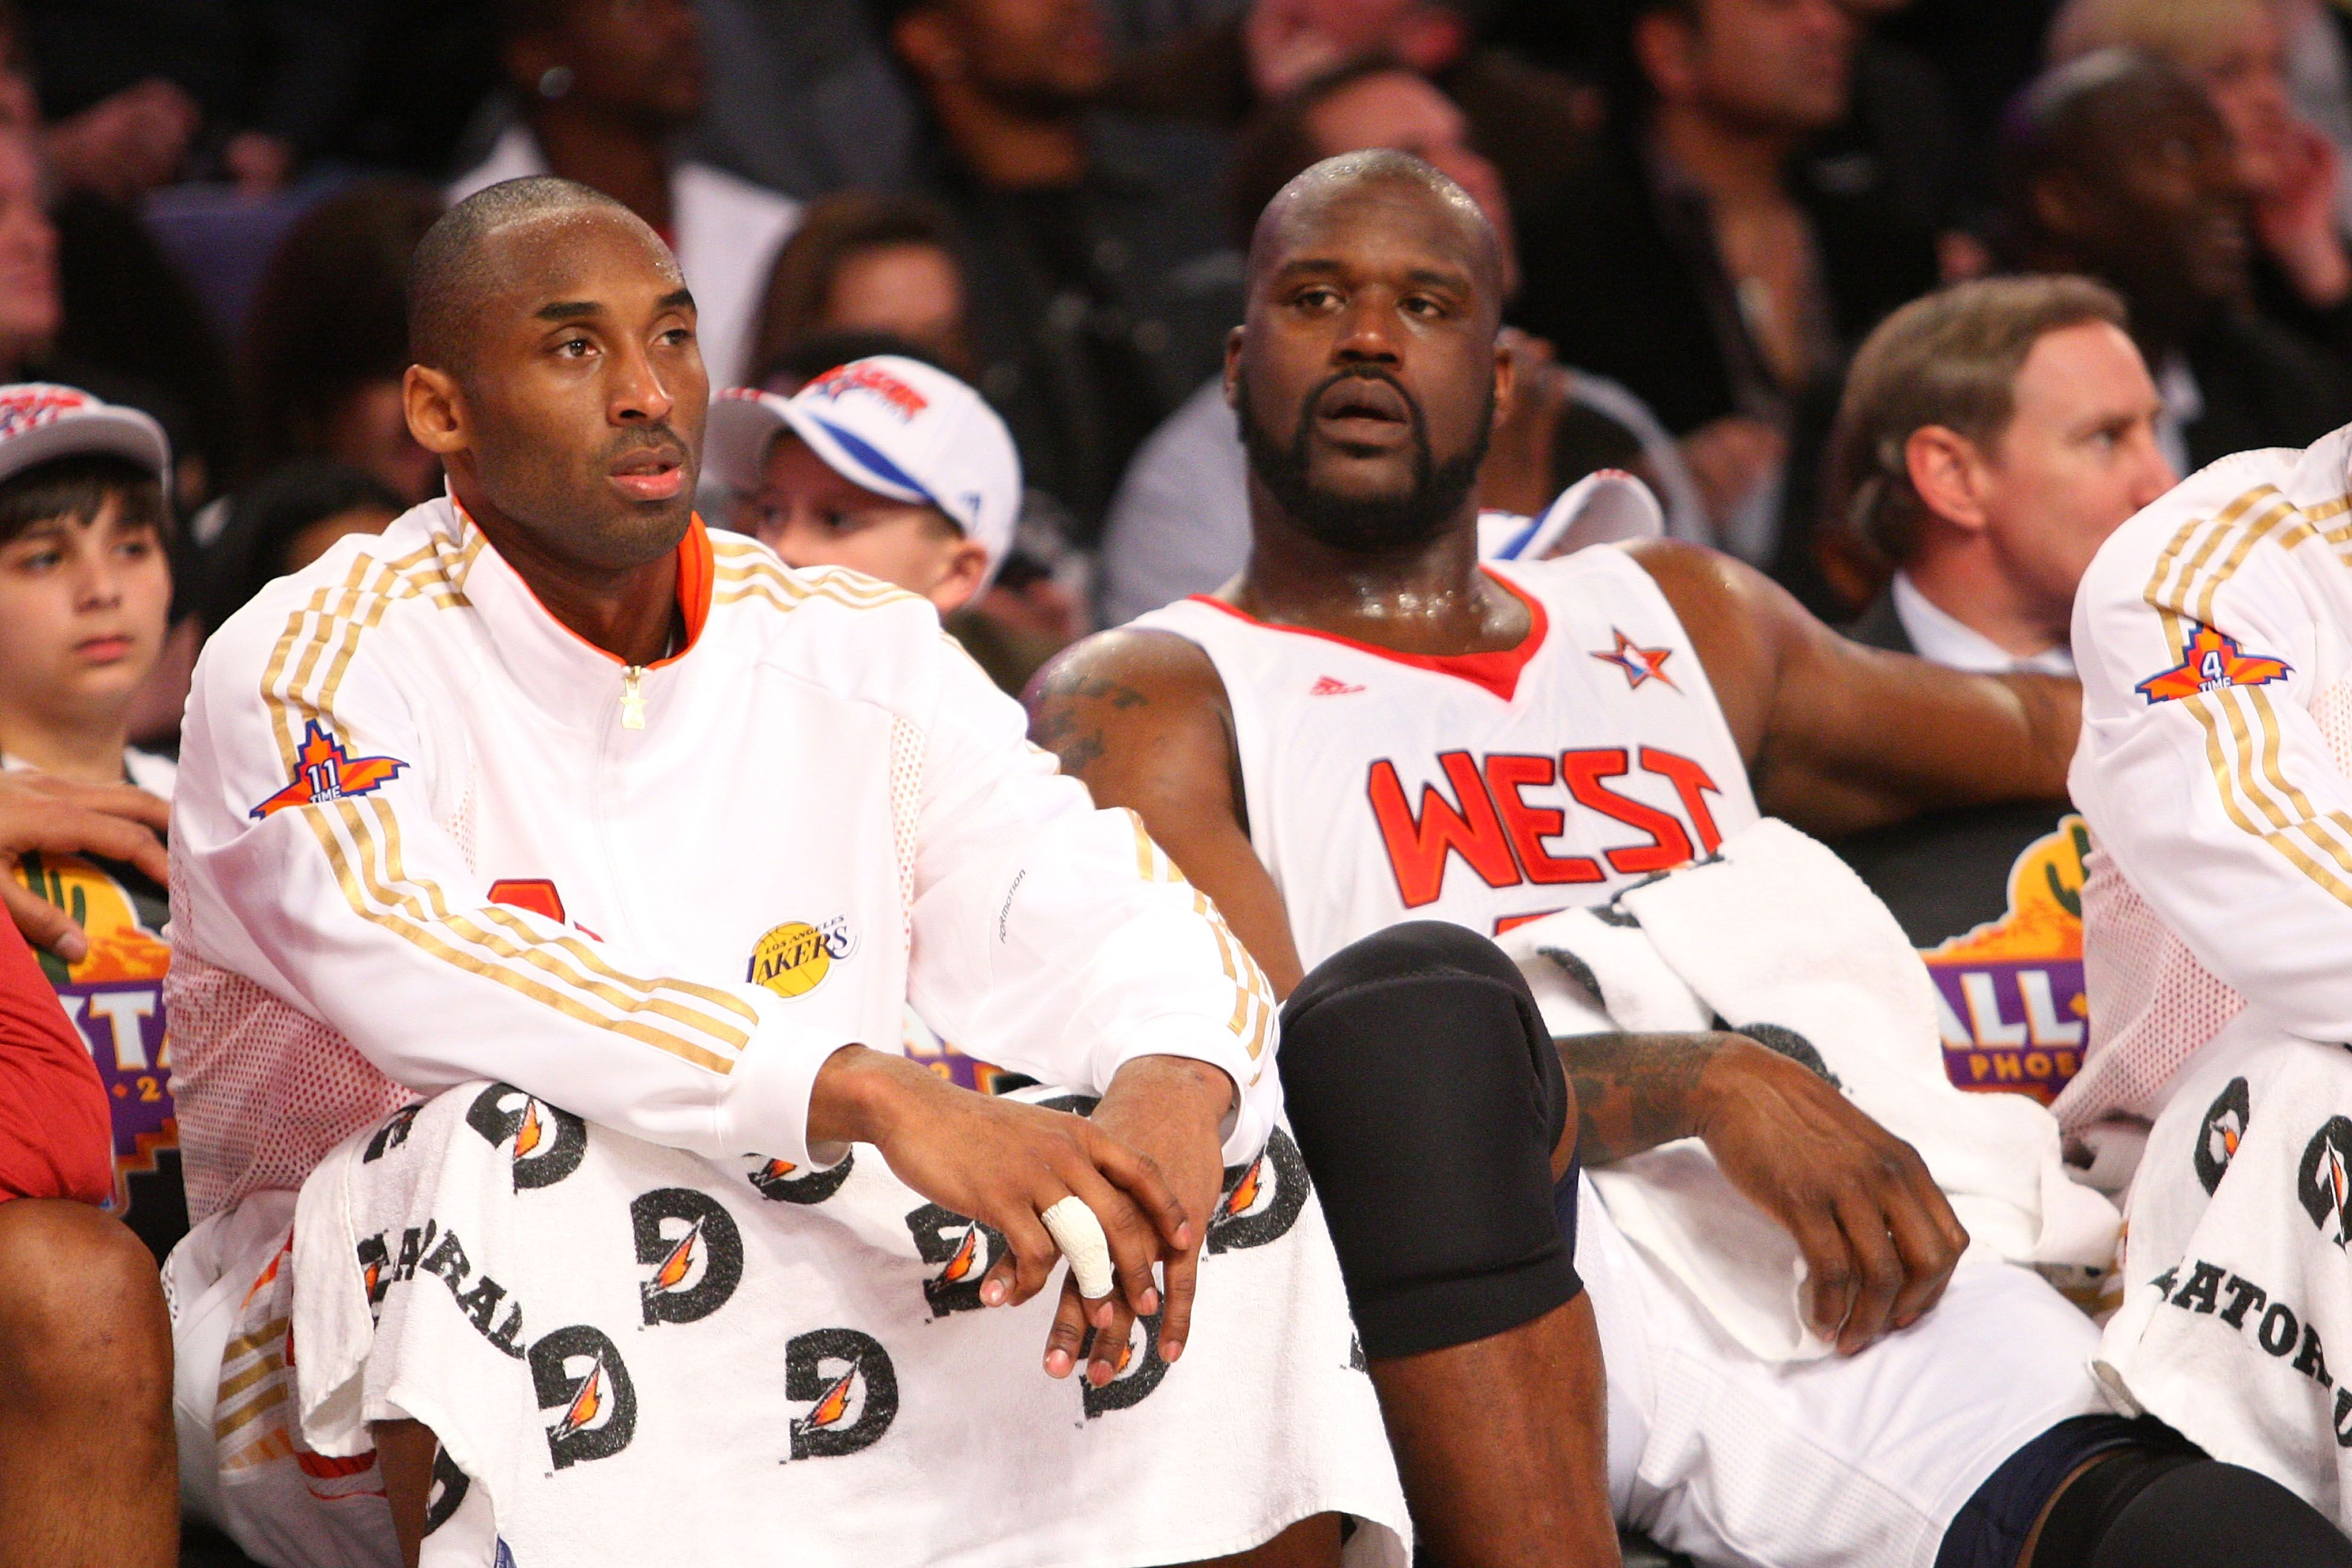 Kobe Bryant and Shaquille O'Neal at an NBA All Stars game/ Source: Getty Images